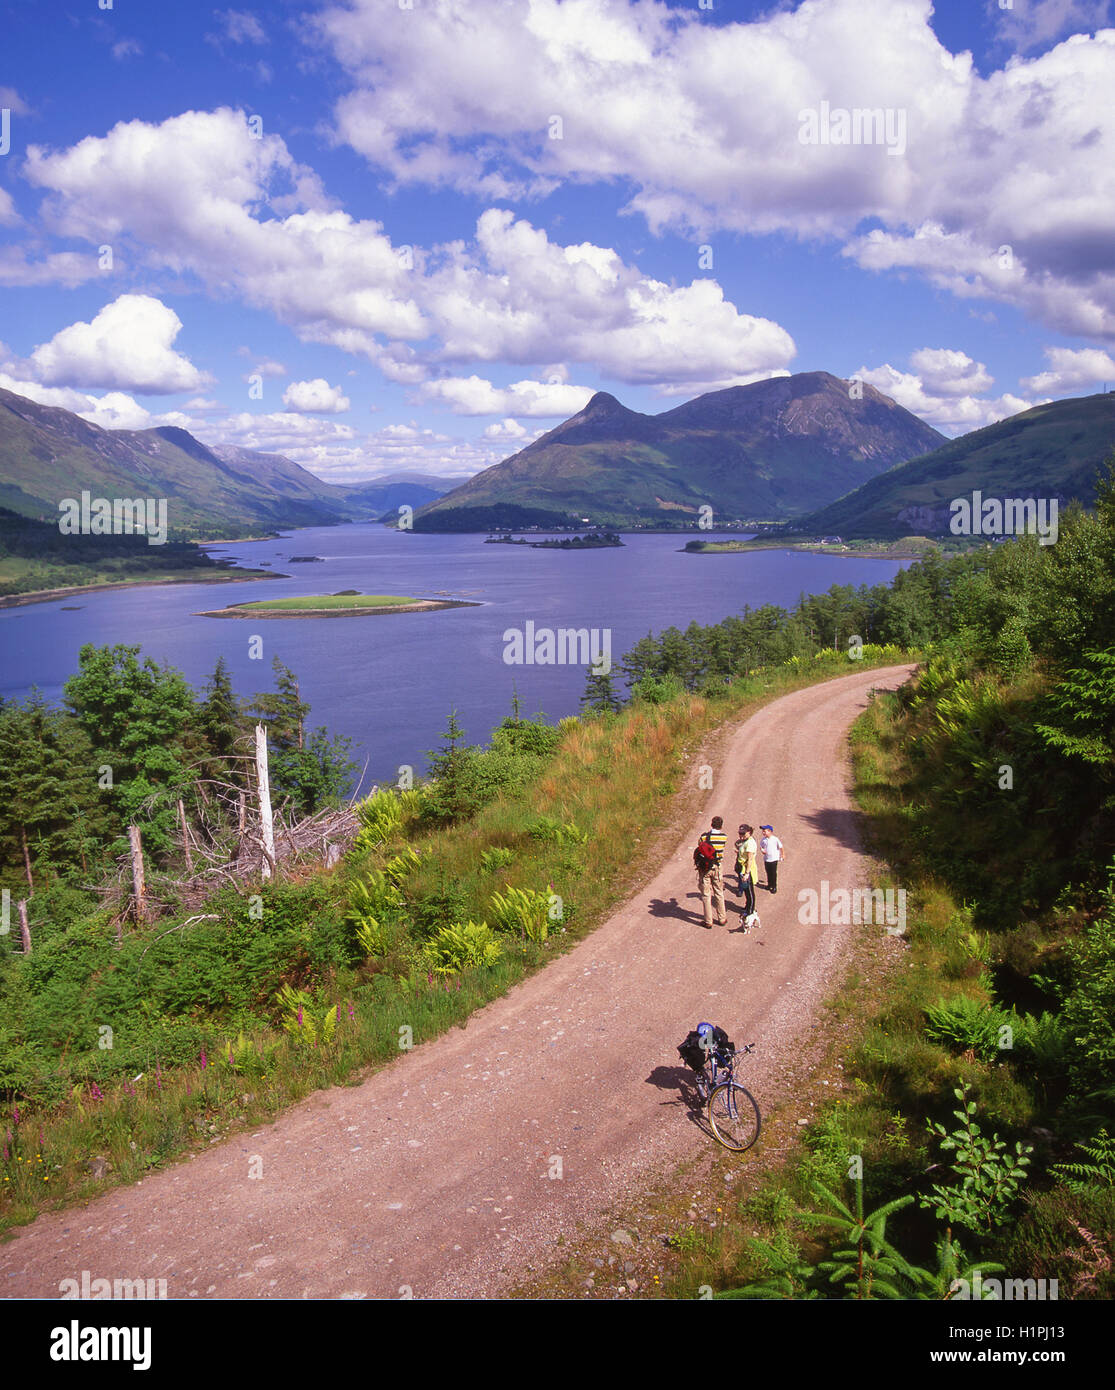 Pap of Glencoe, Loch Leven, West Highlands - Stock Image